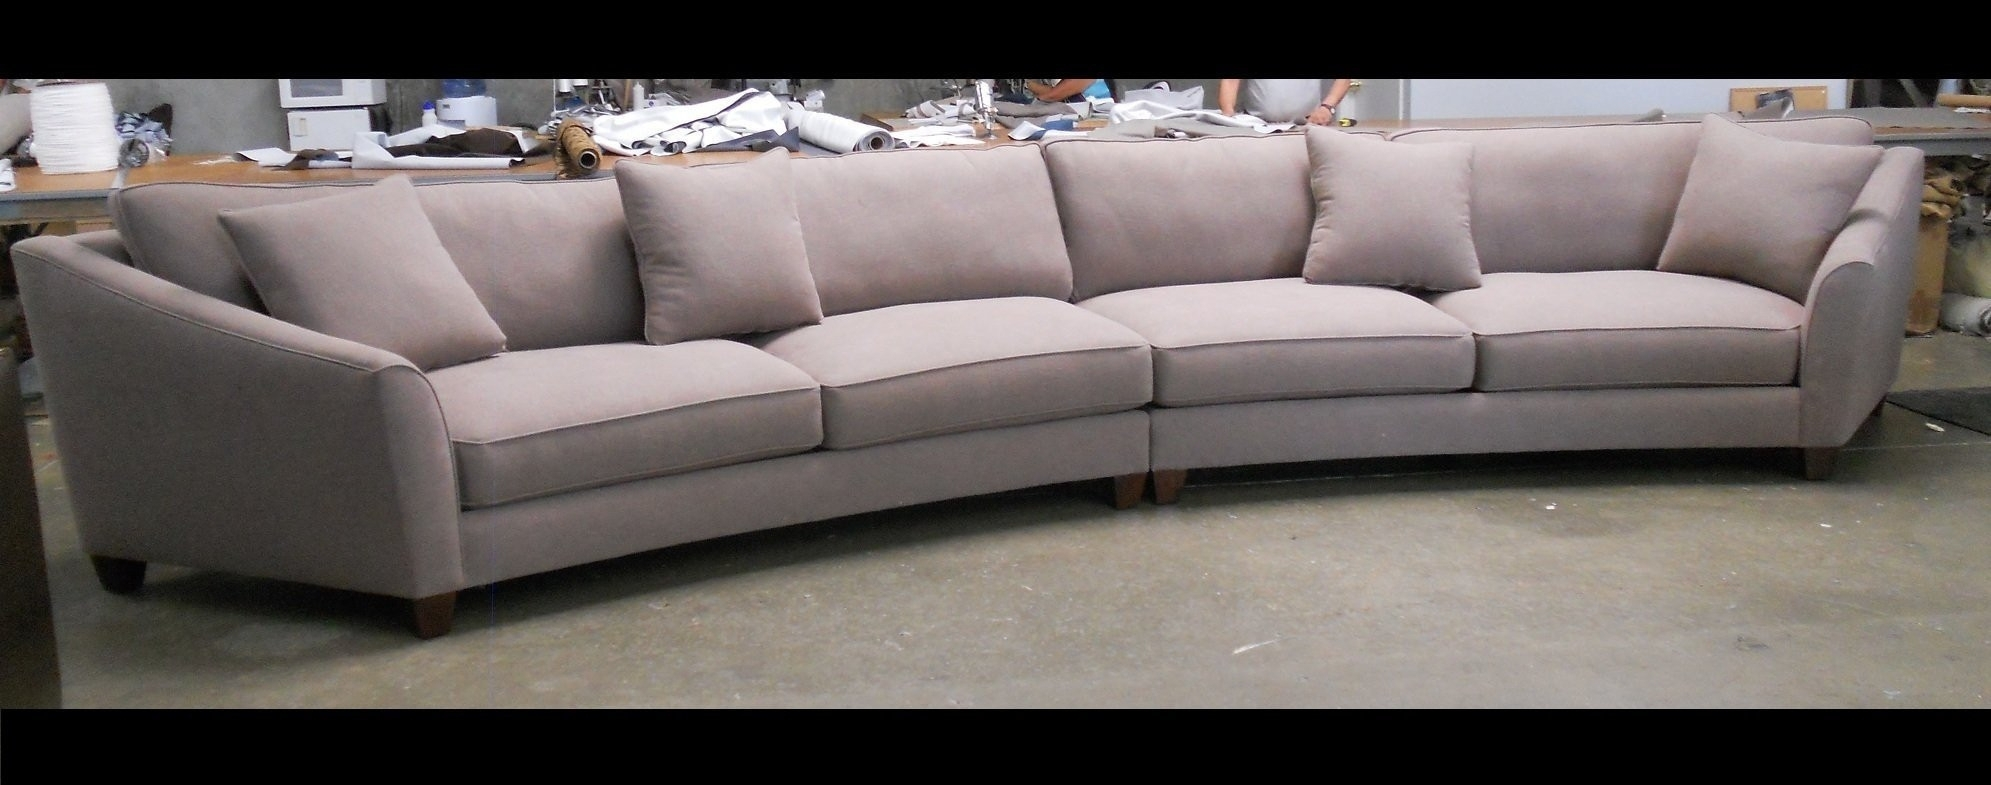 Sectional Sofa : Grey Curved Sectional Semi Circle Couches For Sale Intended For Round Sectional Sofas (View 8 of 10)